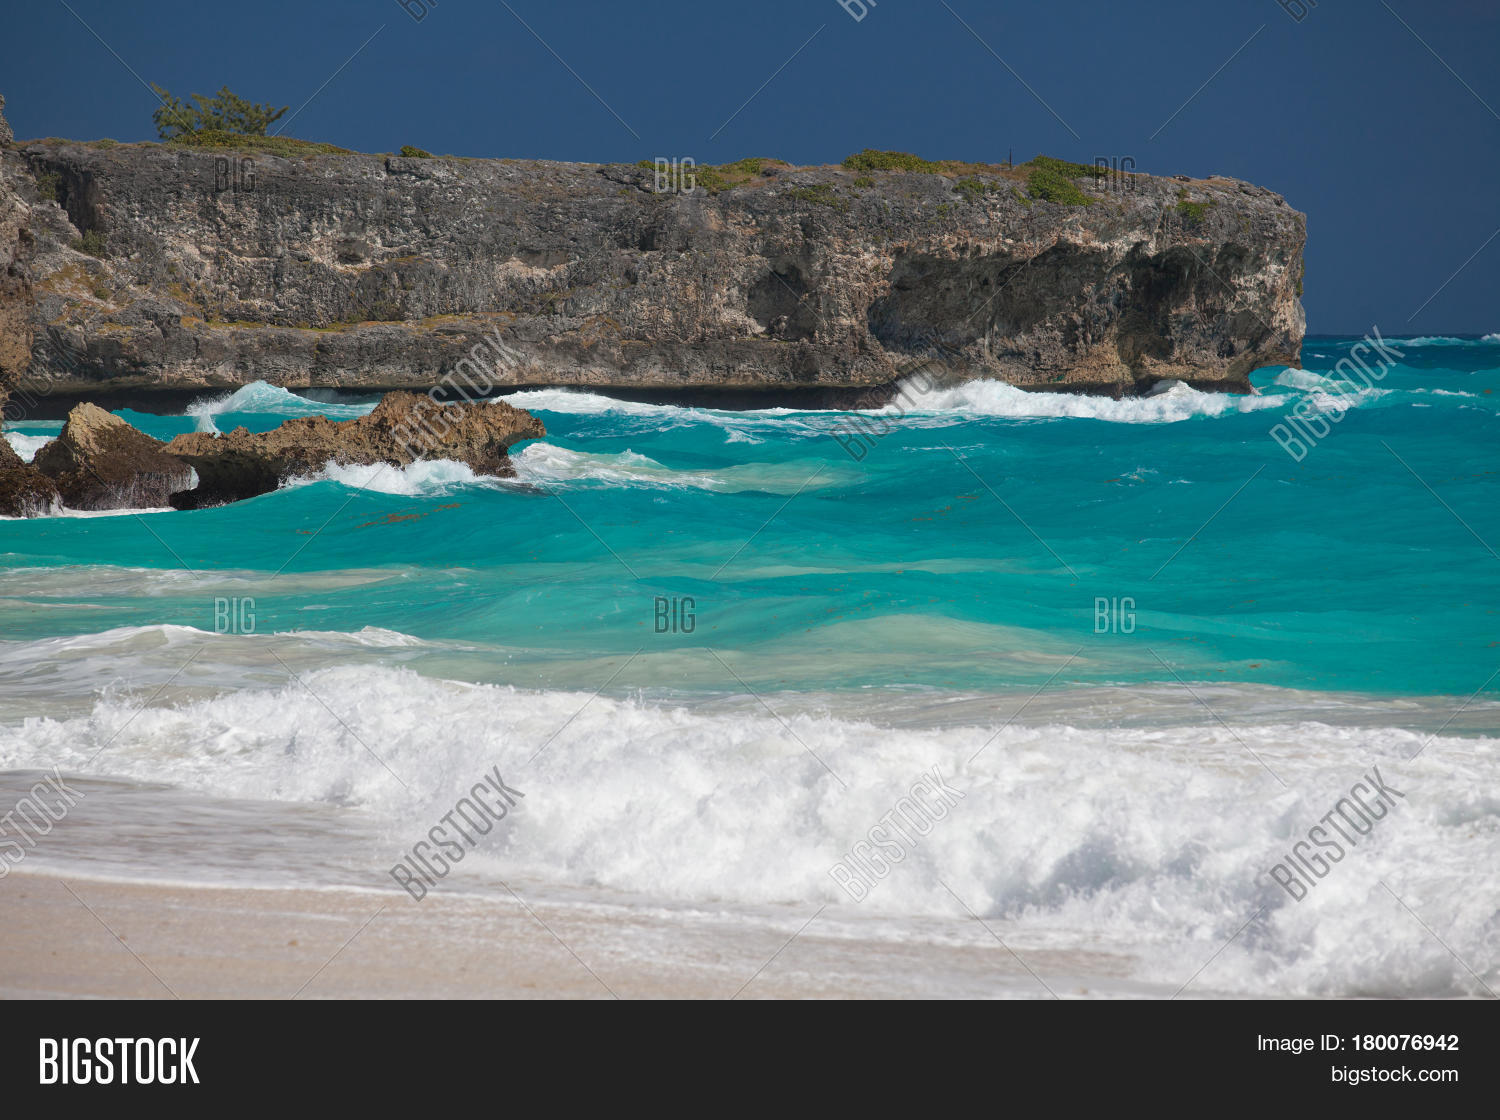 Explore The Beauty Of Caribbean: Bottom Bay Is One Of The Most Beautiful Beaches On The